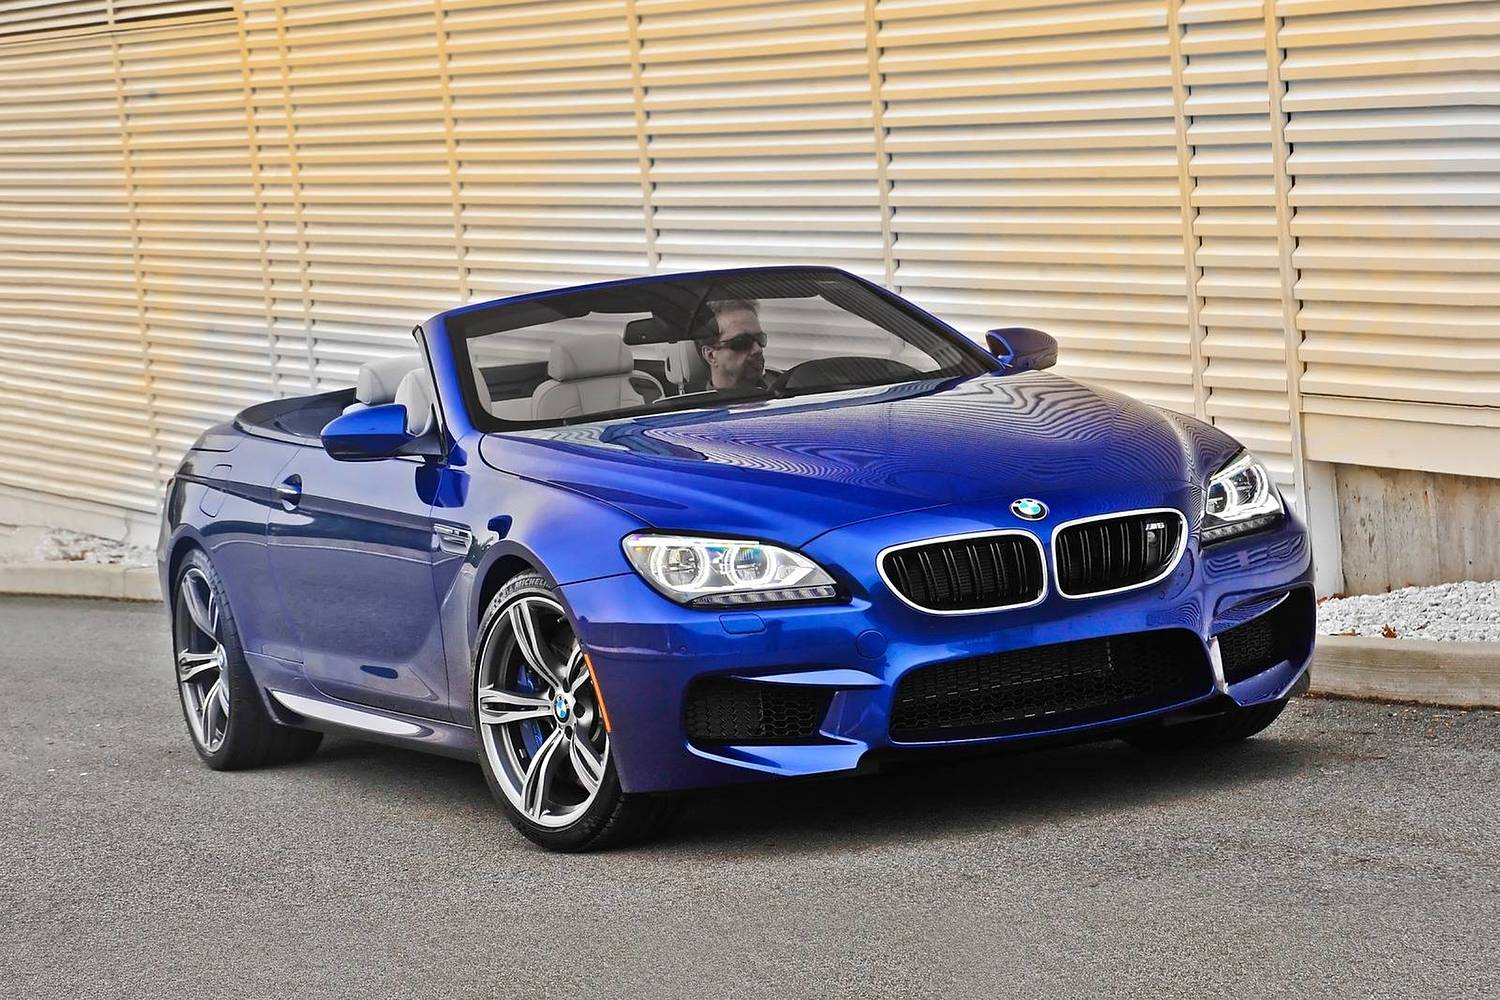 2018 bmw m6 convertible vehie. Black Bedroom Furniture Sets. Home Design Ideas